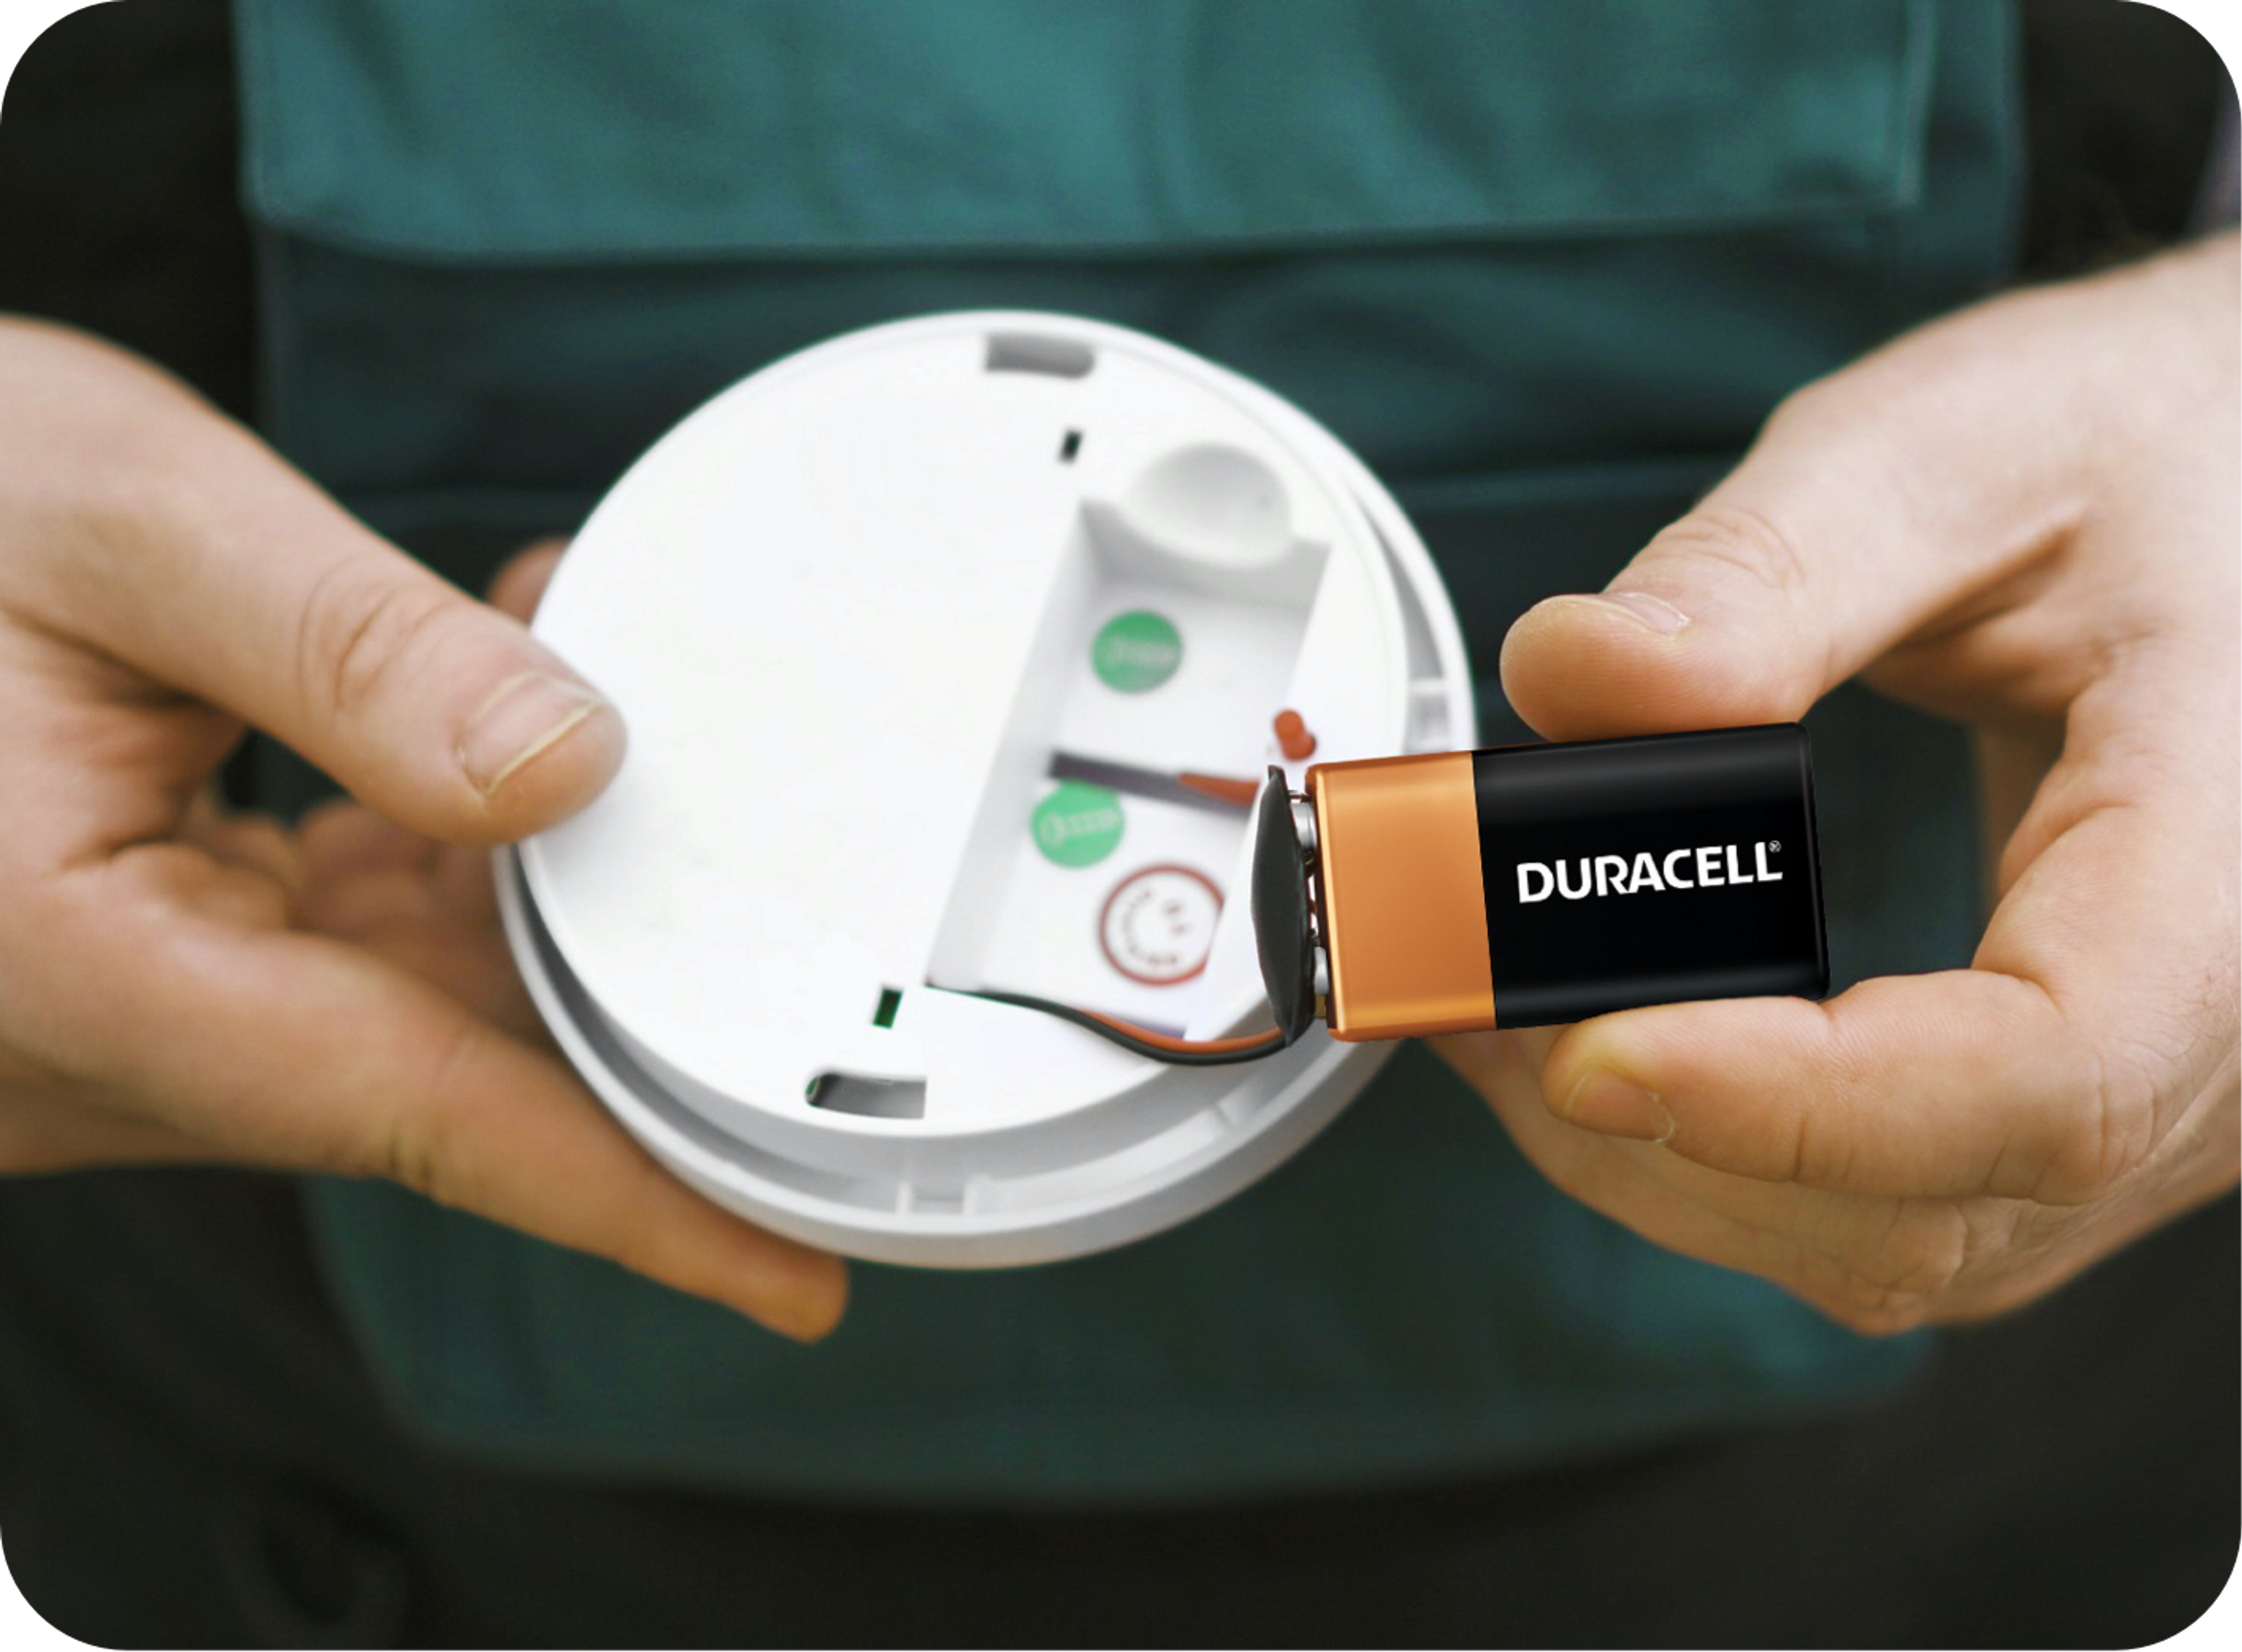 Picture of smoke detector and duracel battery being held by a Caucasian man's hands